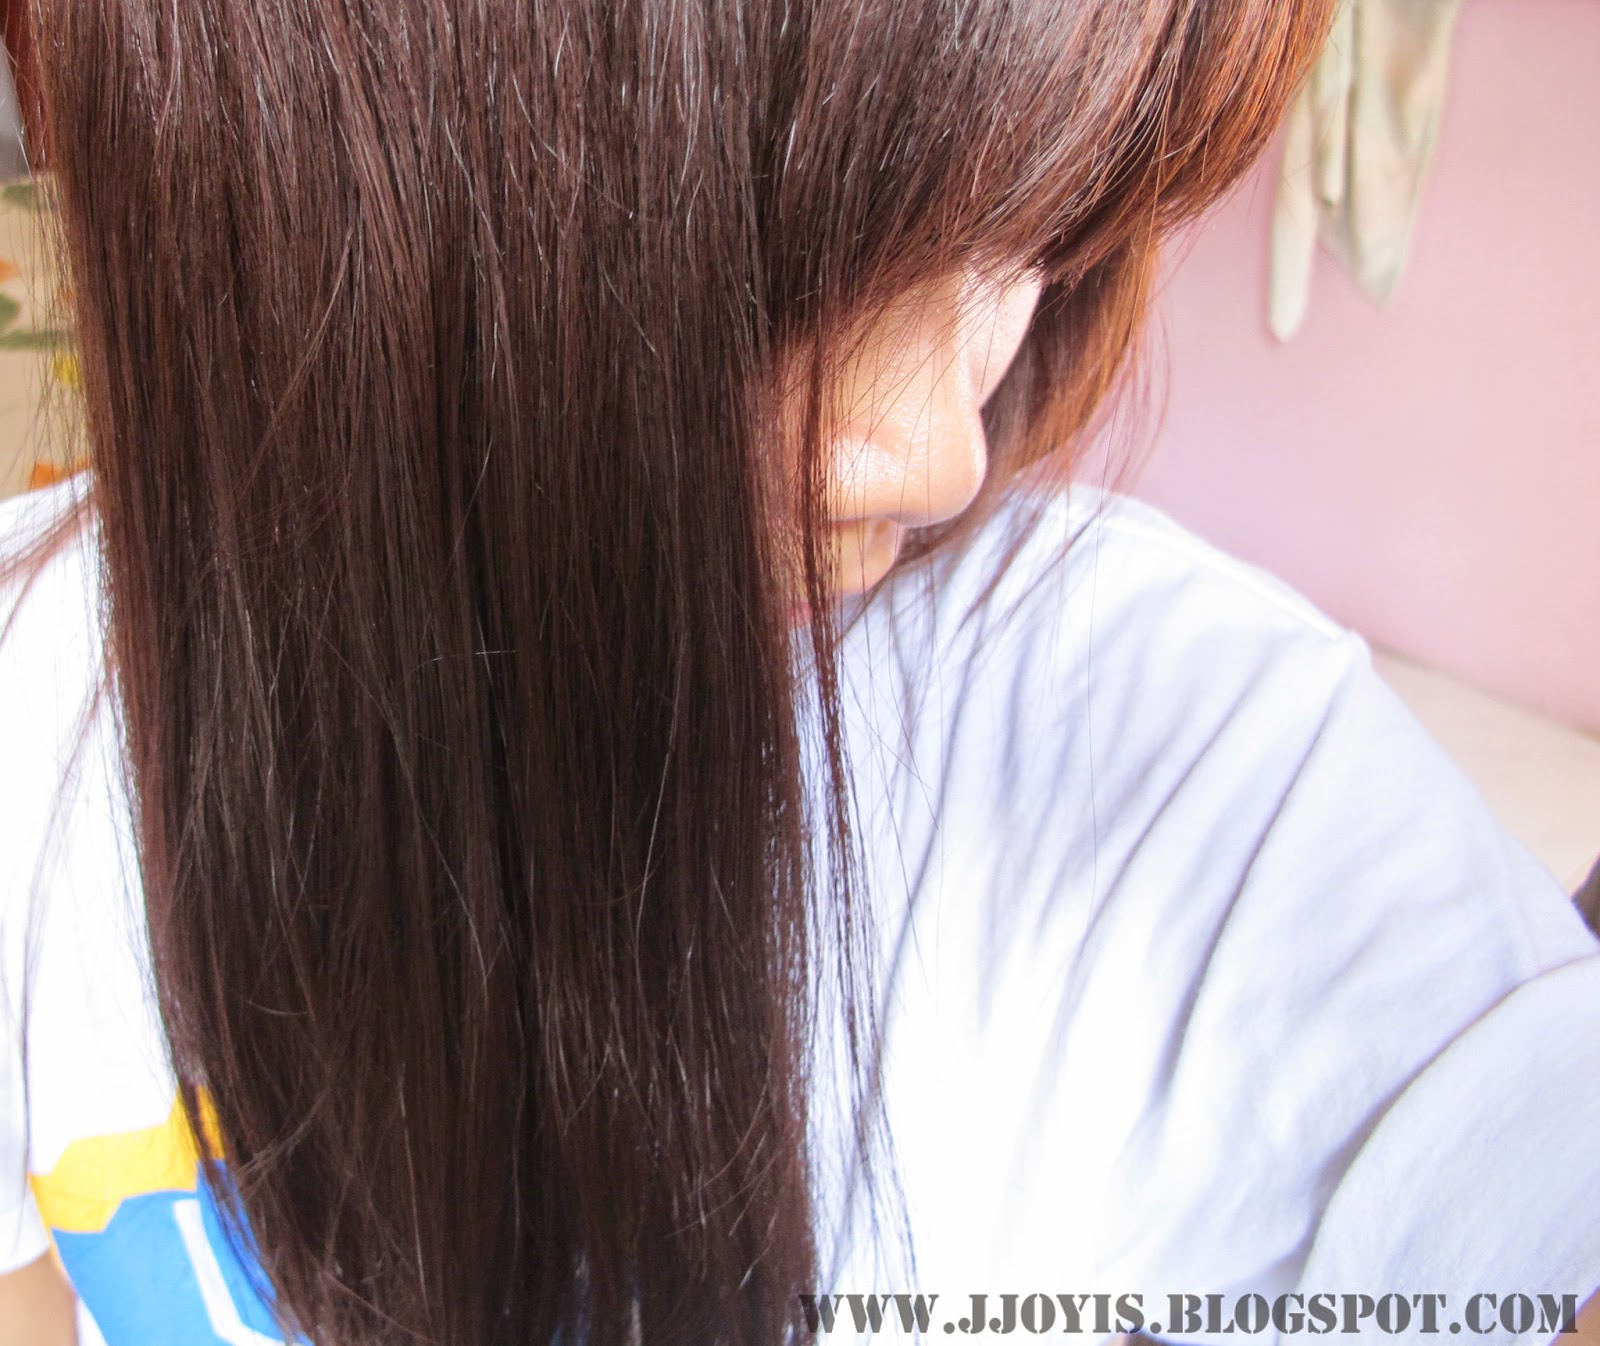 hair condition after dyeing